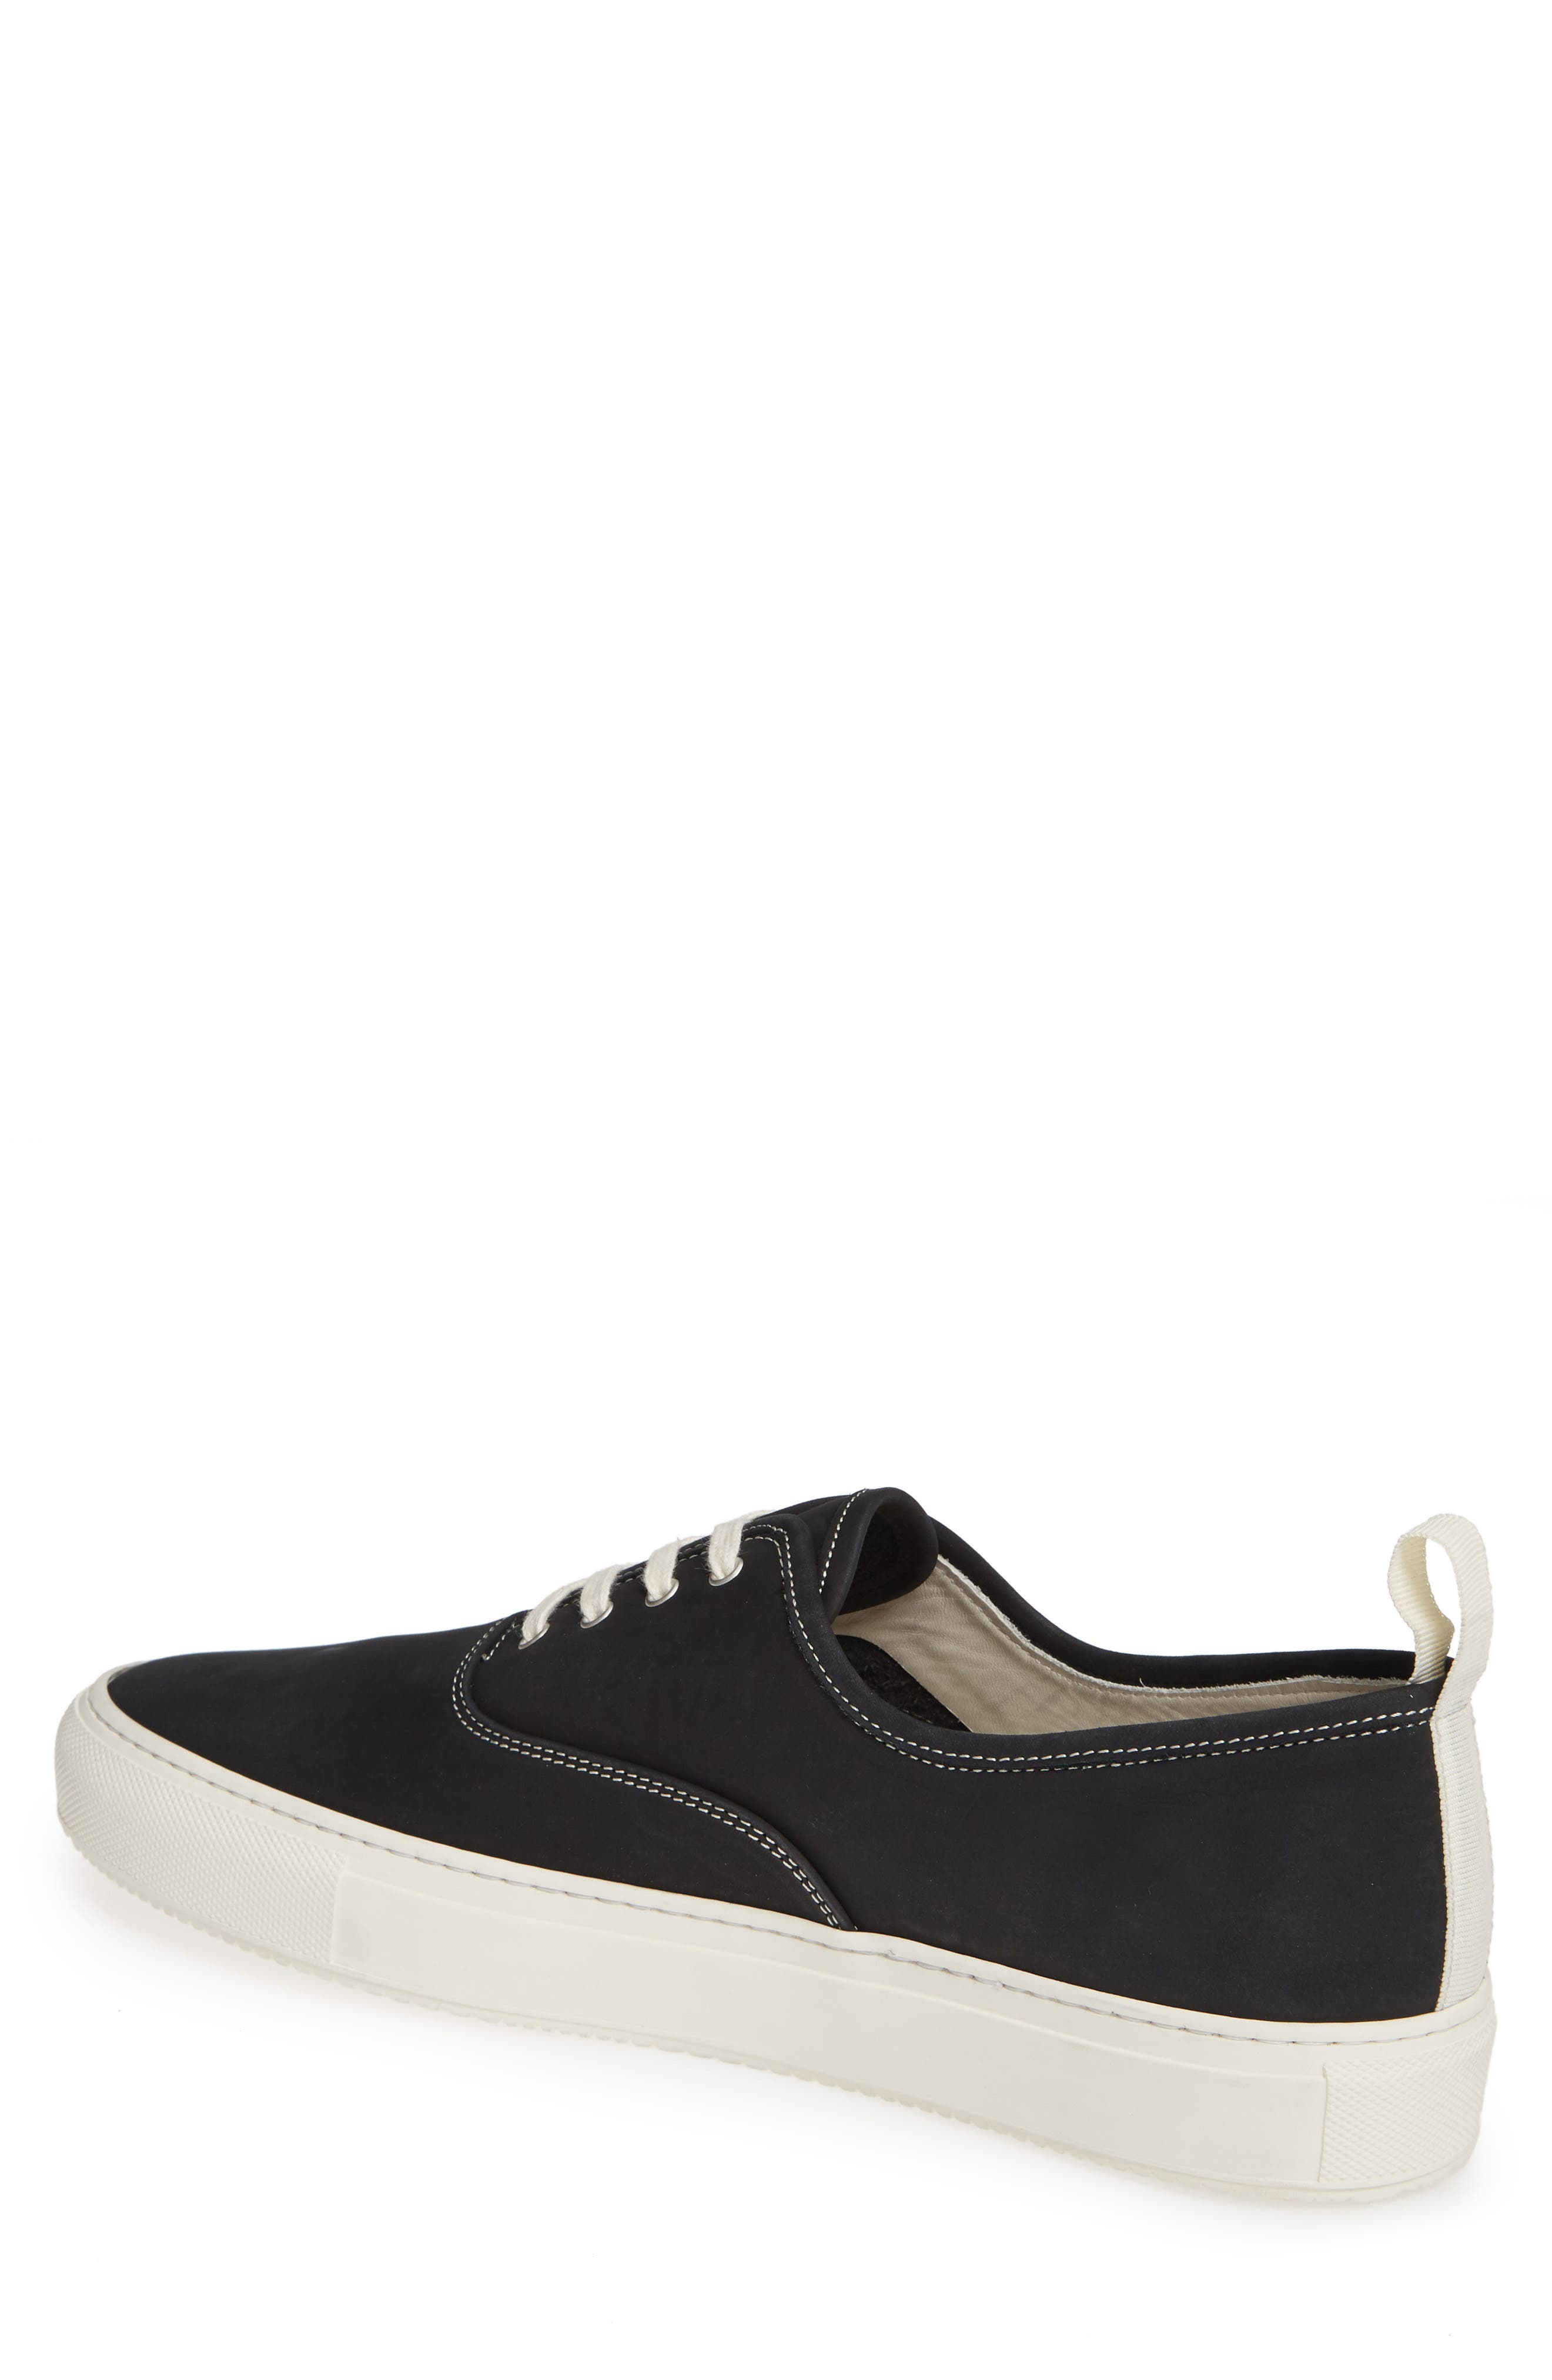 COMMON PROJECTS, Four-Hole Sneaker, Alternate thumbnail 2, color, BLACK